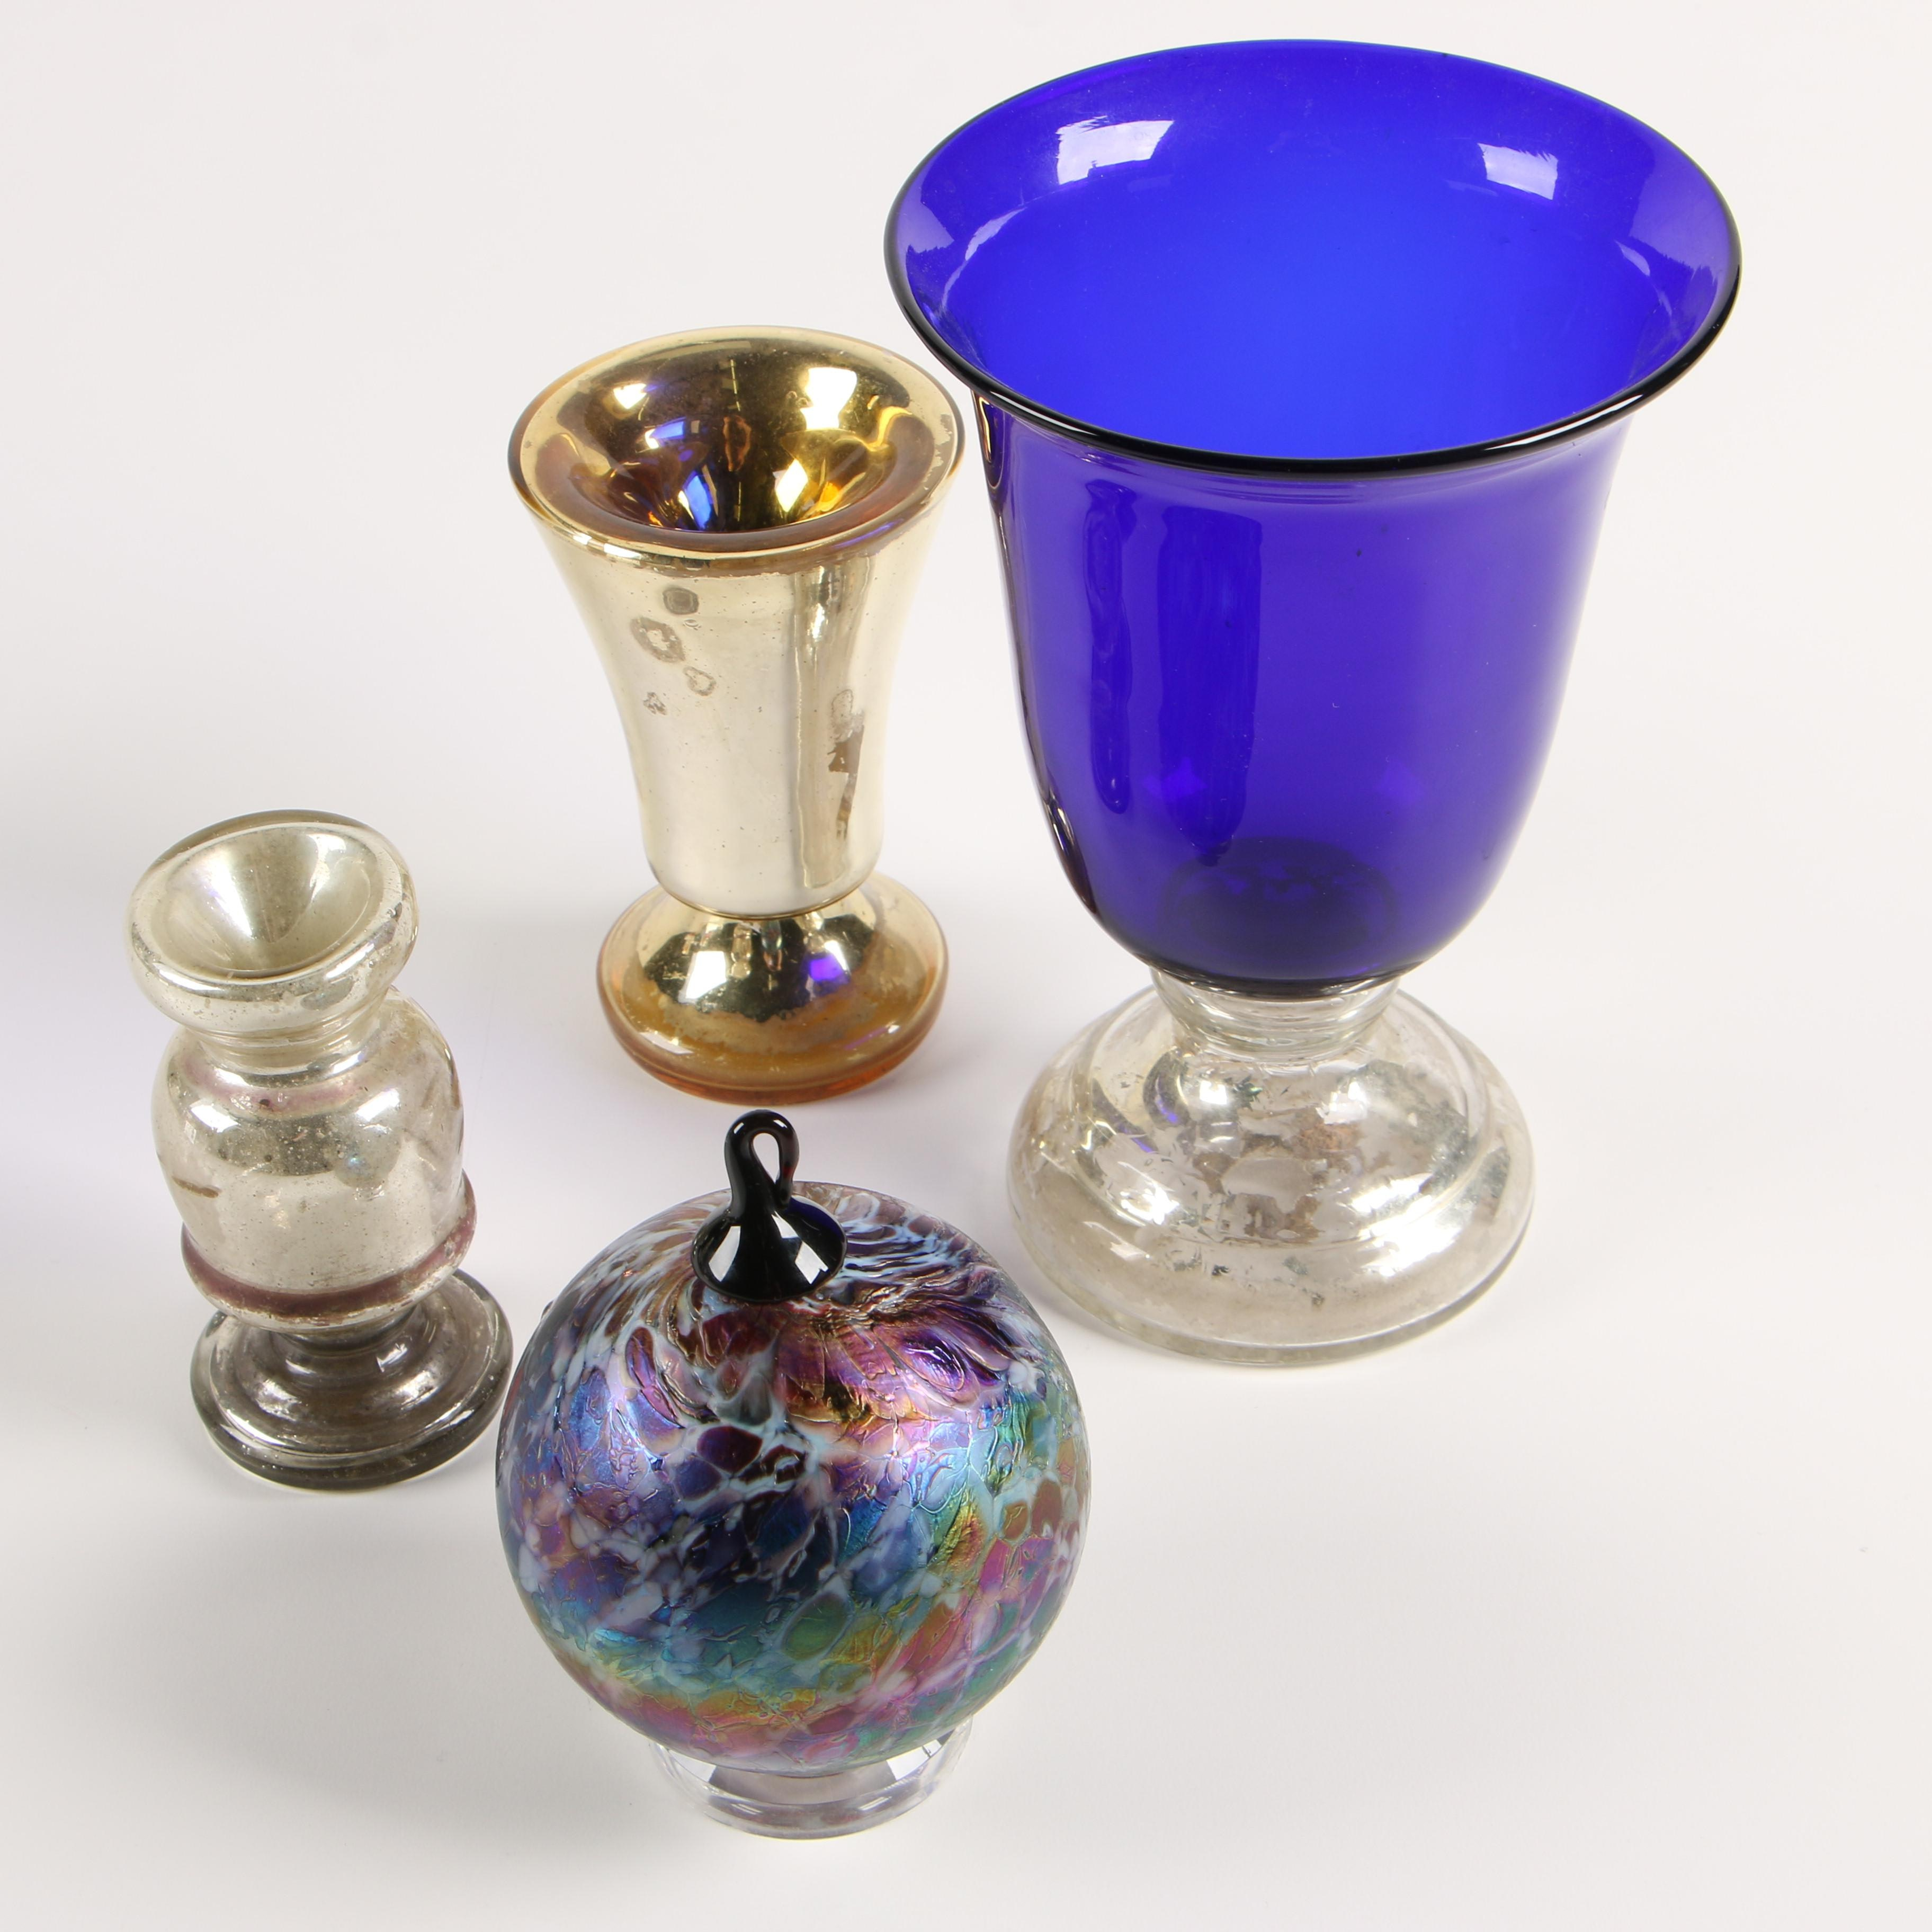 Art Glass and Mercury Glass Vases and Ornament